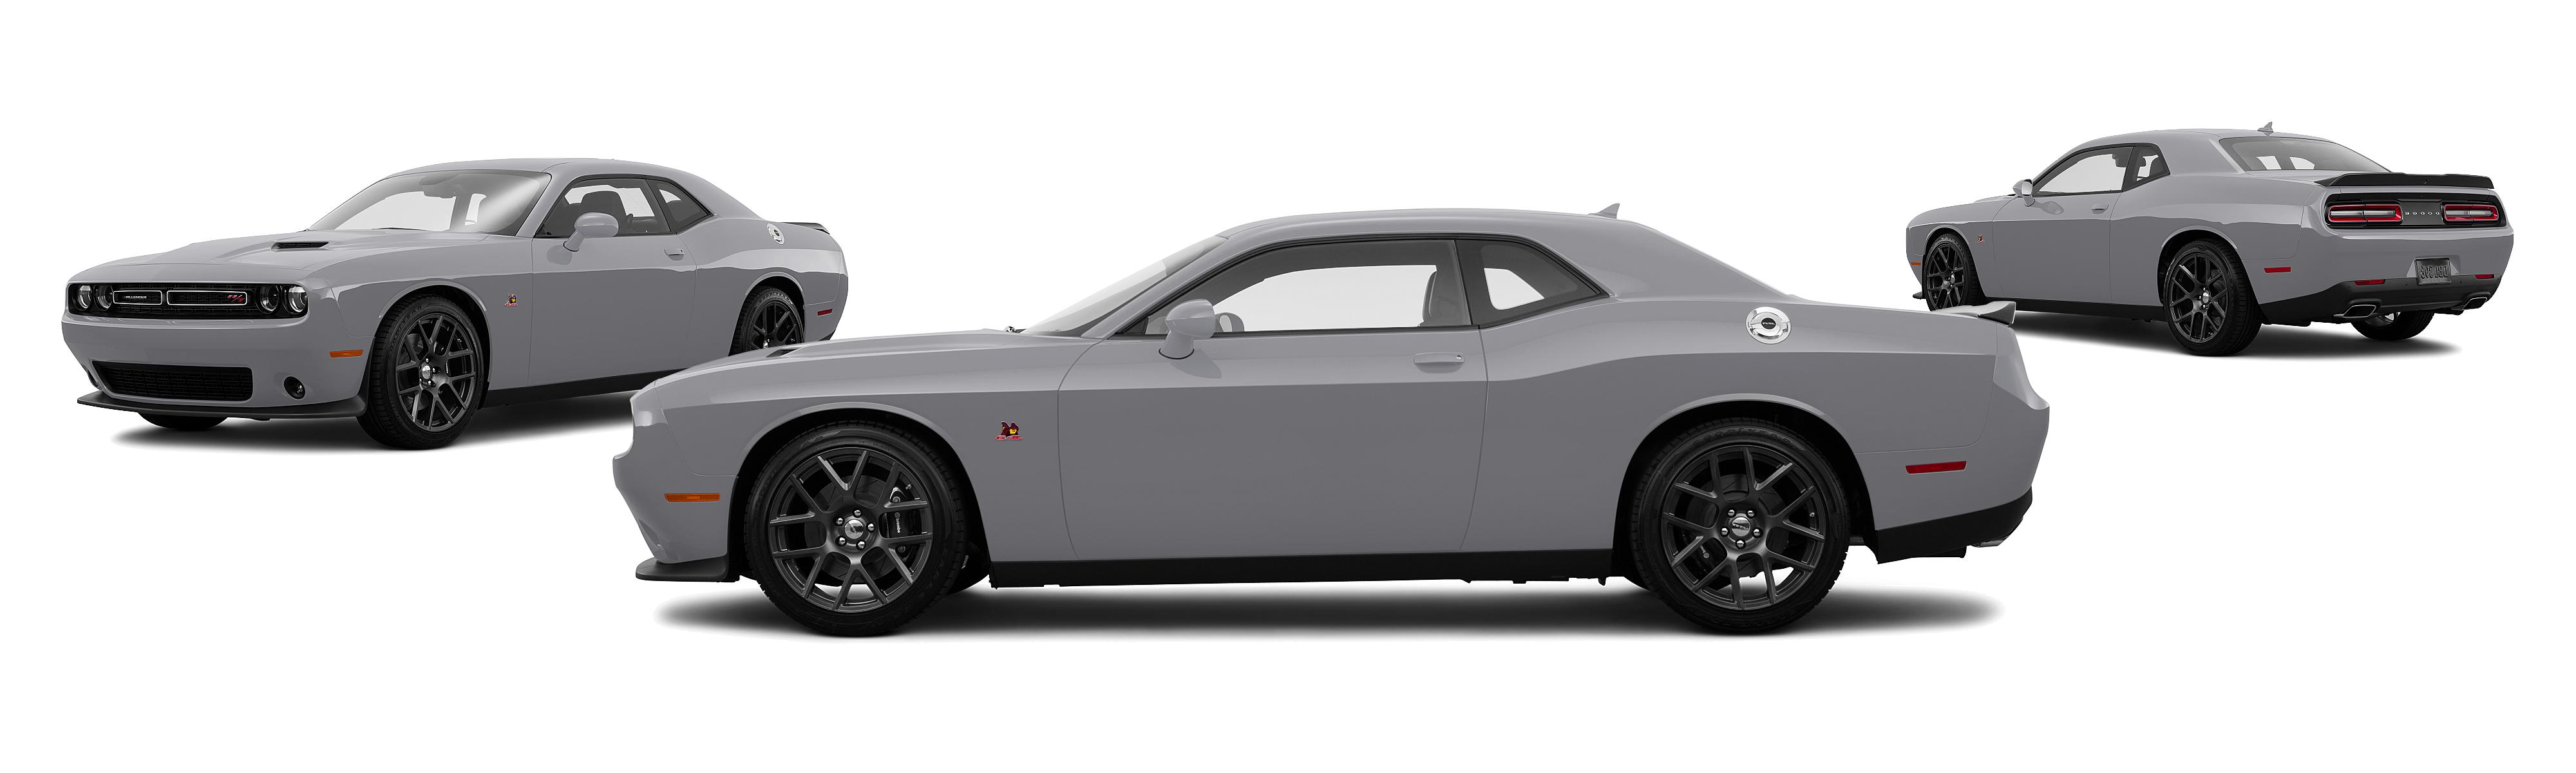 while rt dodge cars grassroots car r challenger reviews t redline new